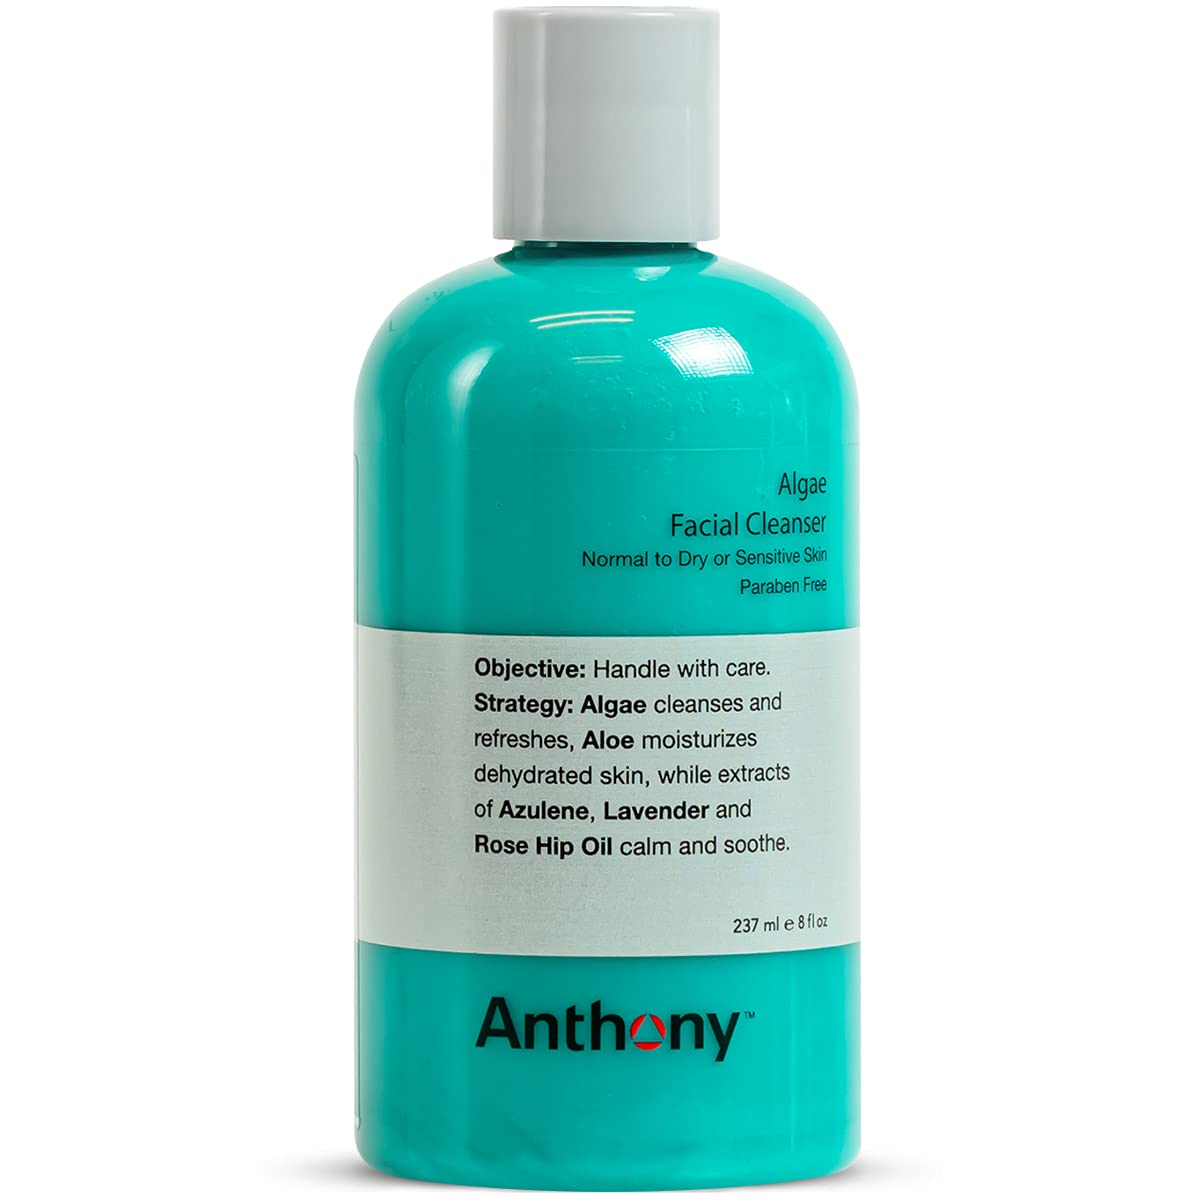 Anthony Algae Facial Cleanser 8 Contains National uniform free shipping Ver Aloe Oz. Special price for a limited time Fl